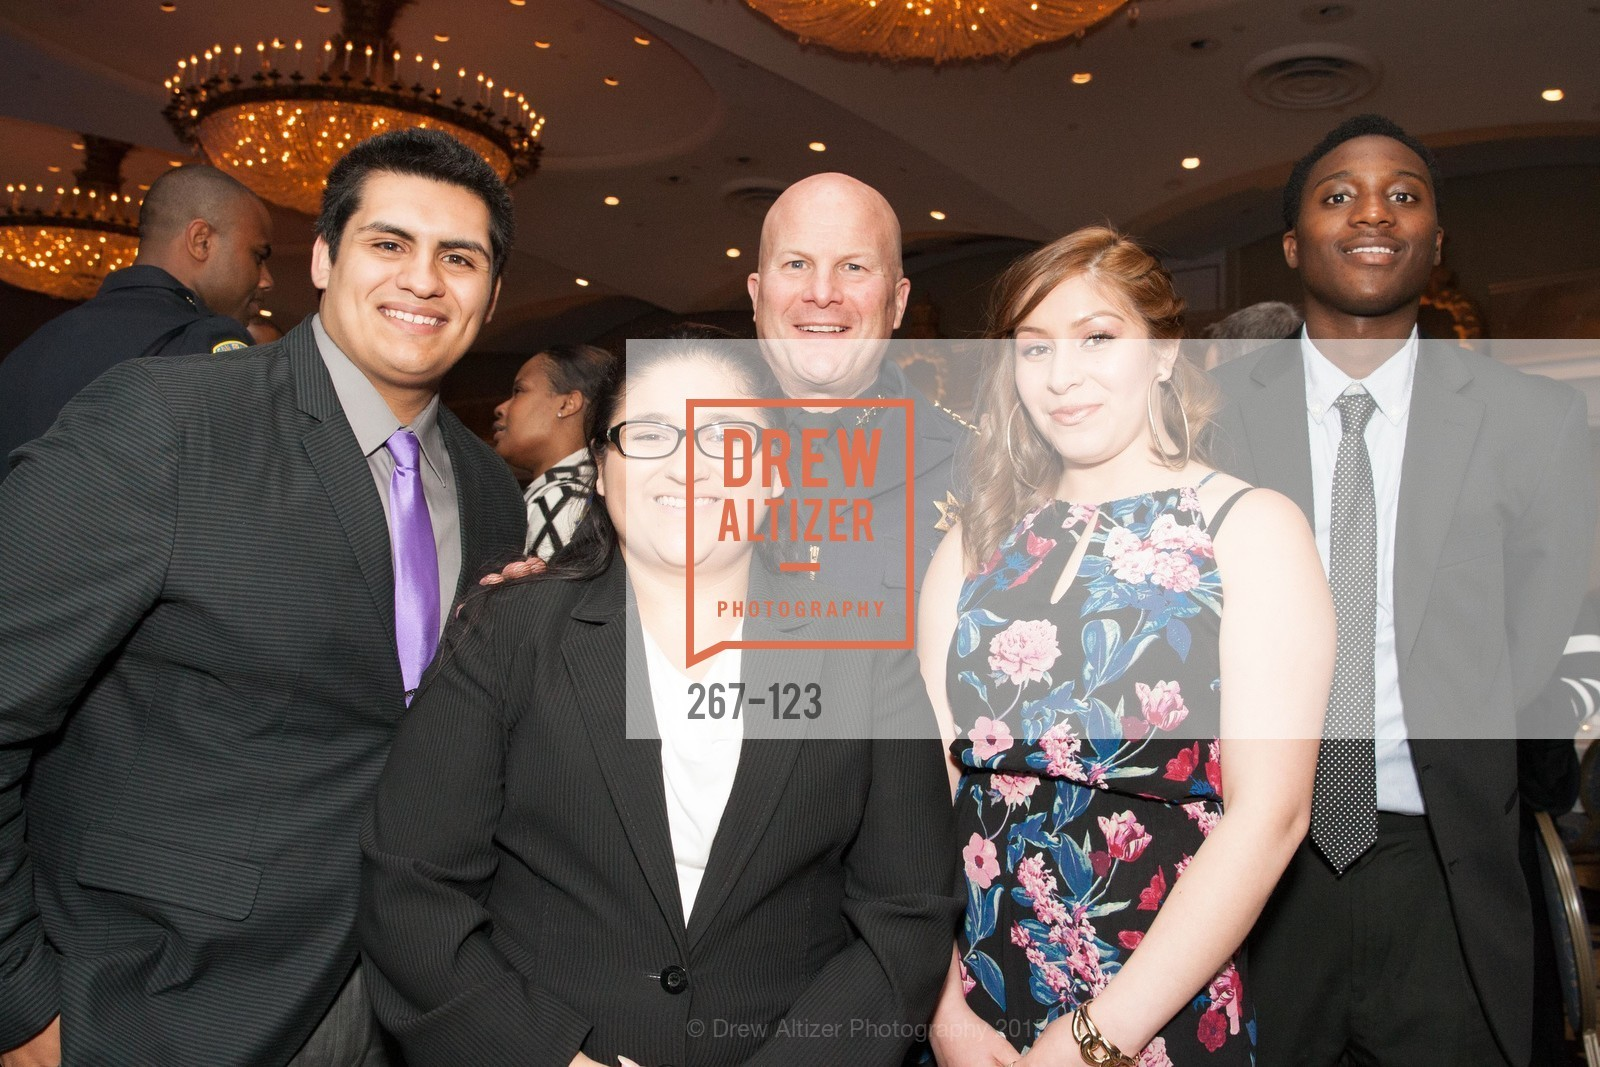 Joe Armijo, Carmen Sosa, Greg Suhr, Yuri Huerta, Khari Brown, 2015 Boys and Girls Club Annual Gala, The Fairmont San Francisco. 950 Mason St, May 20th, 2015,Drew Altizer, Drew Altizer Photography, full-service agency, private events, San Francisco photographer, photographer california